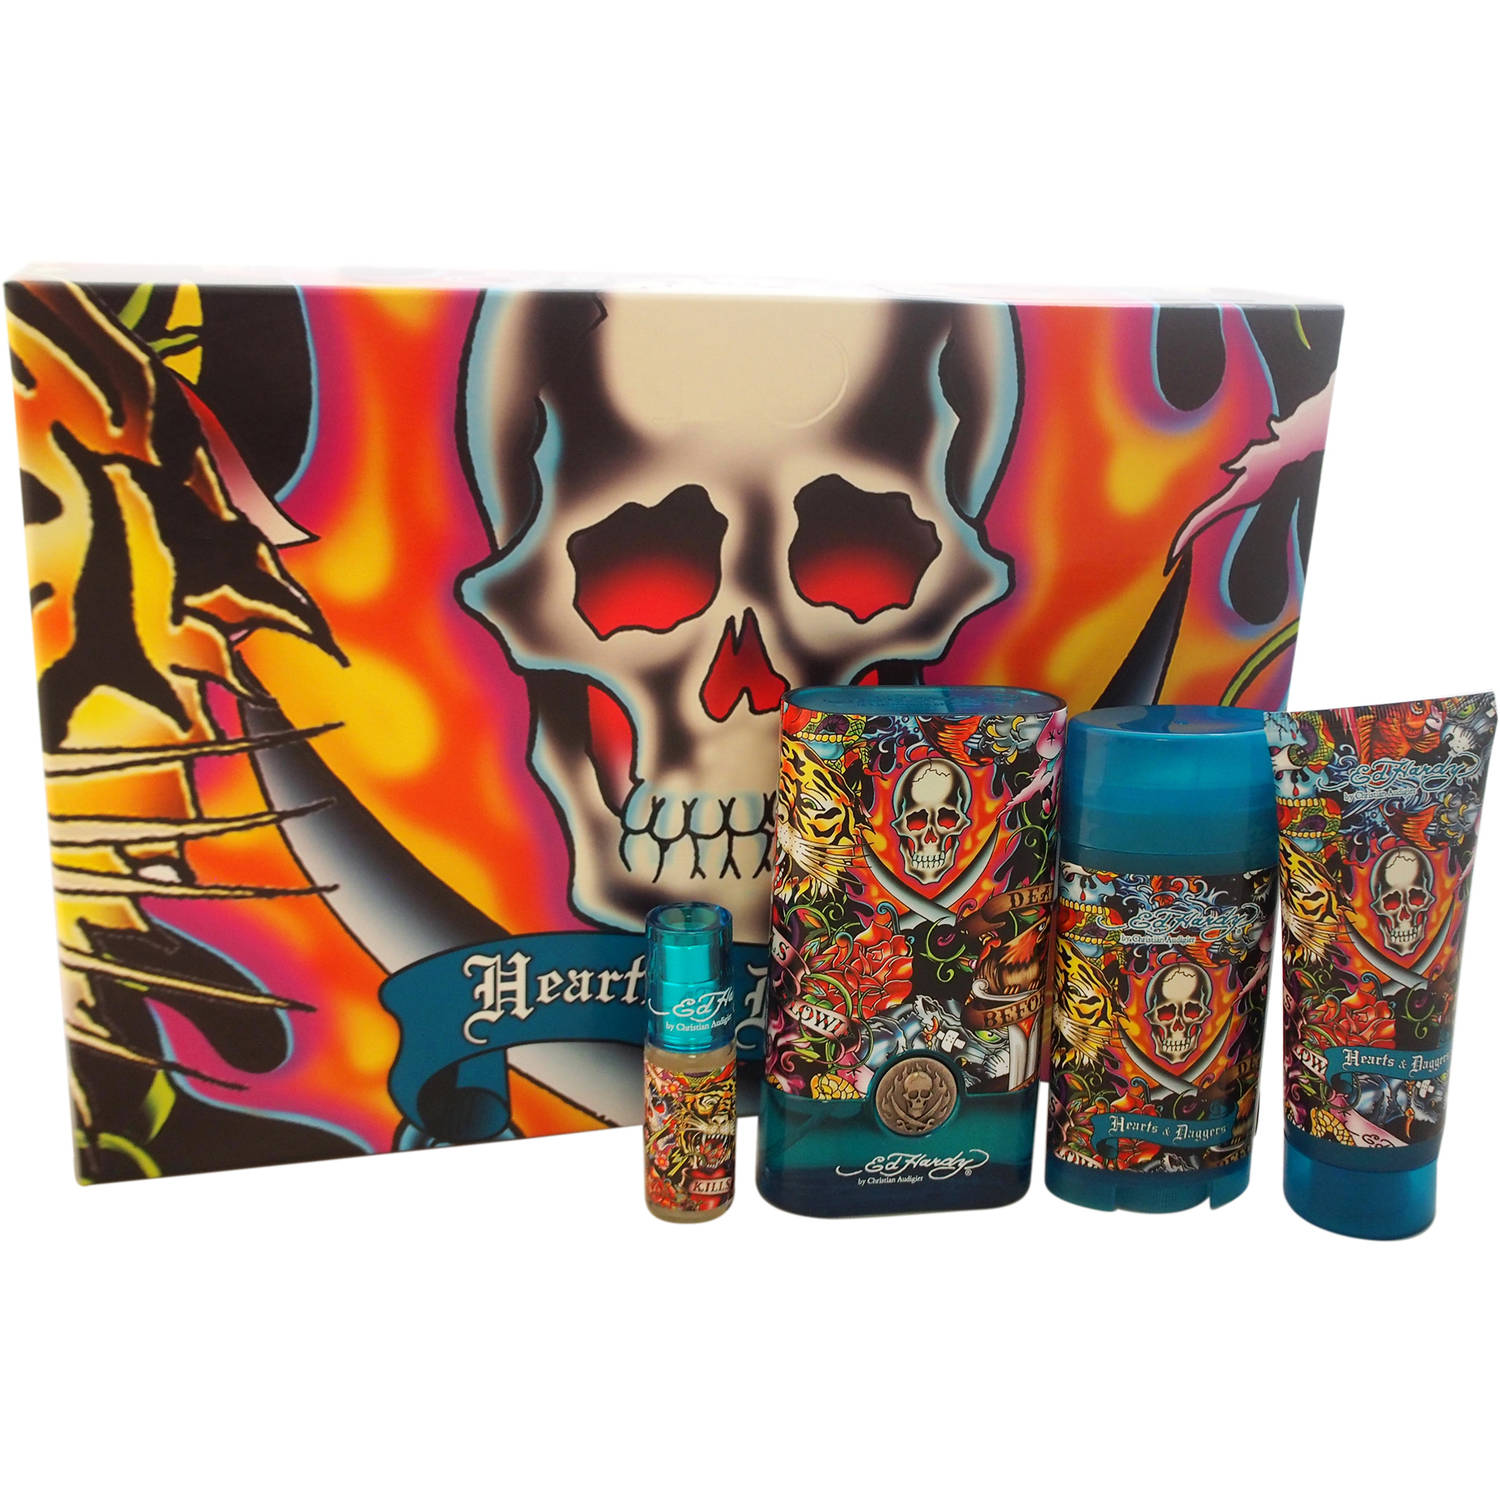 Christian Audigier Ed Hardy Hearts & Daggers for Men Fragrance Gift Set, 4 pc